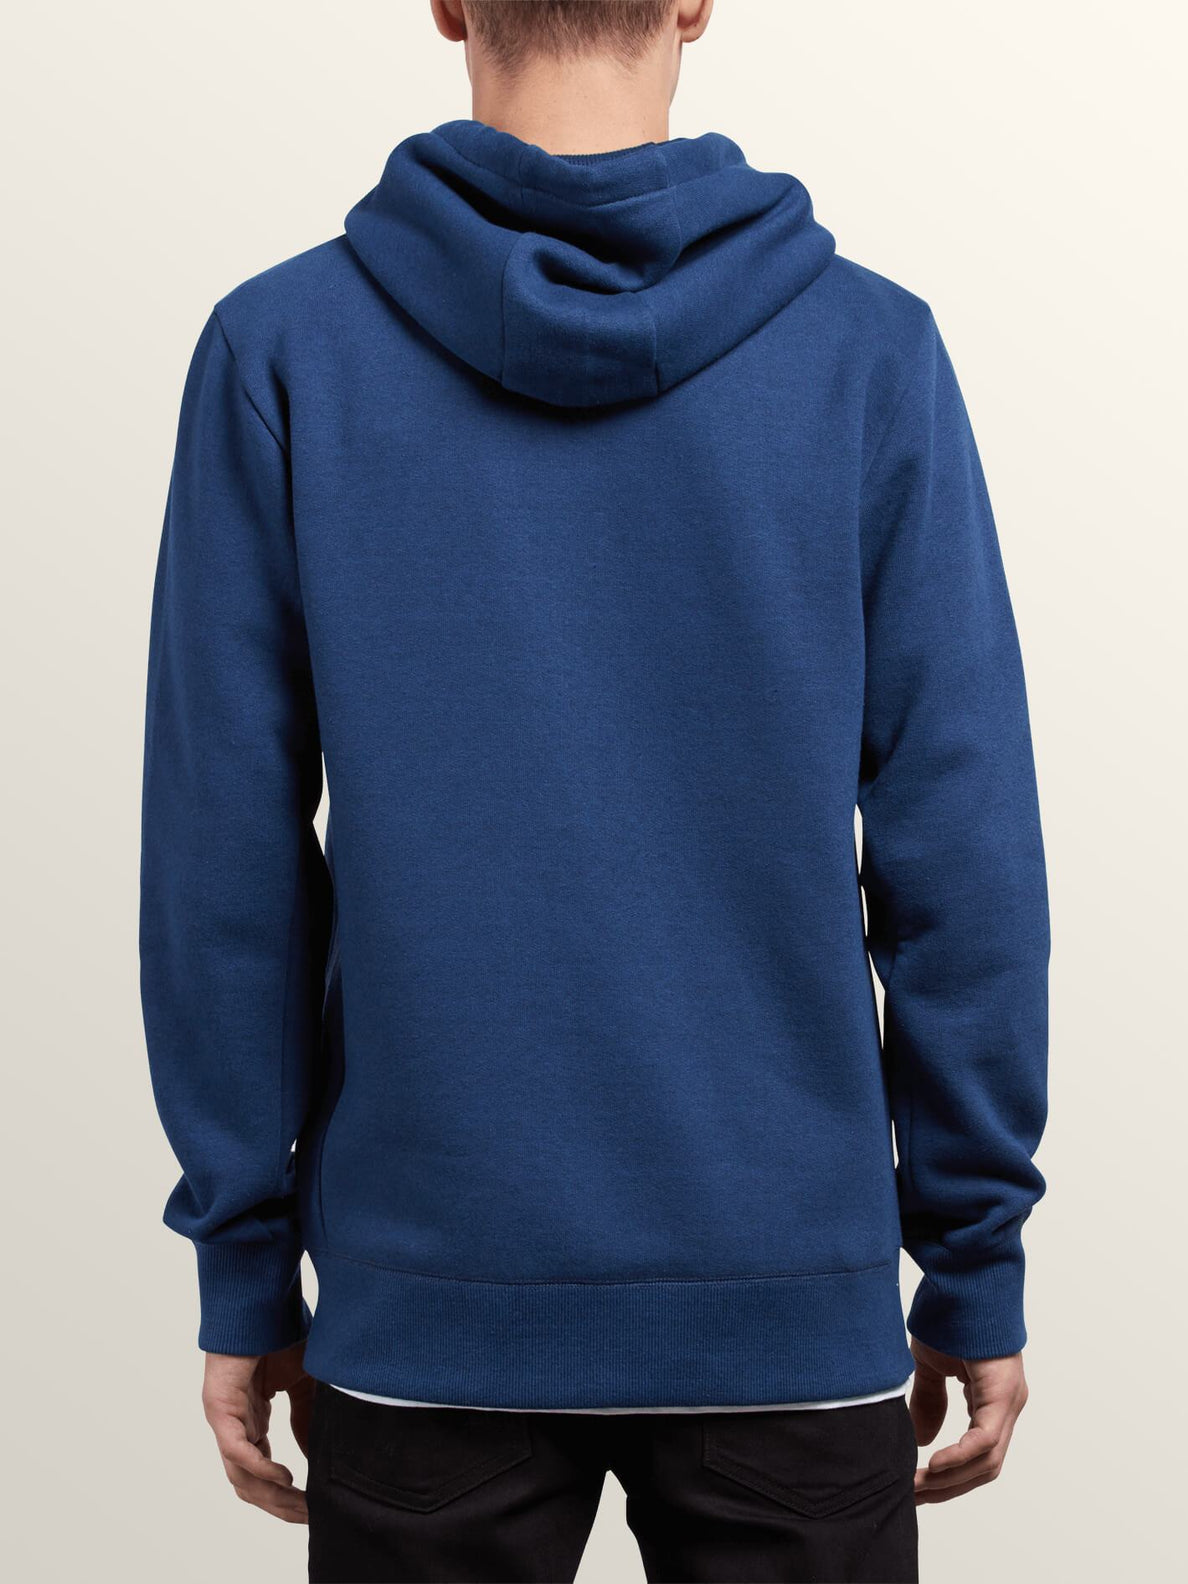 Shop Zip Hoodie In Matured Blue, Back View